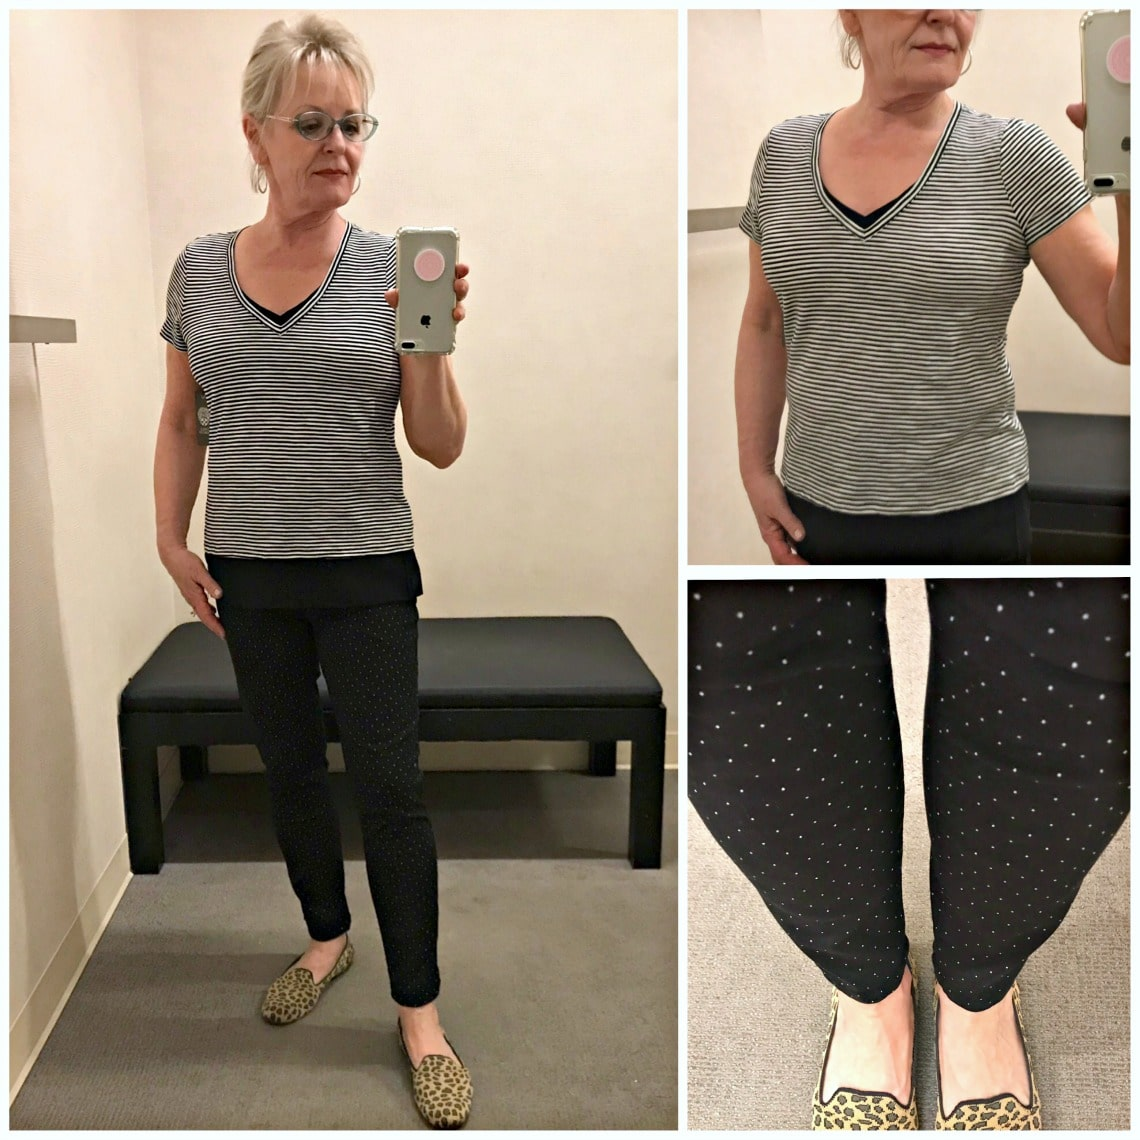 over 50 style blogger shows casual outfit of black and white striped Vince Camuto tee over polka dot Wit and Wisdom jeans